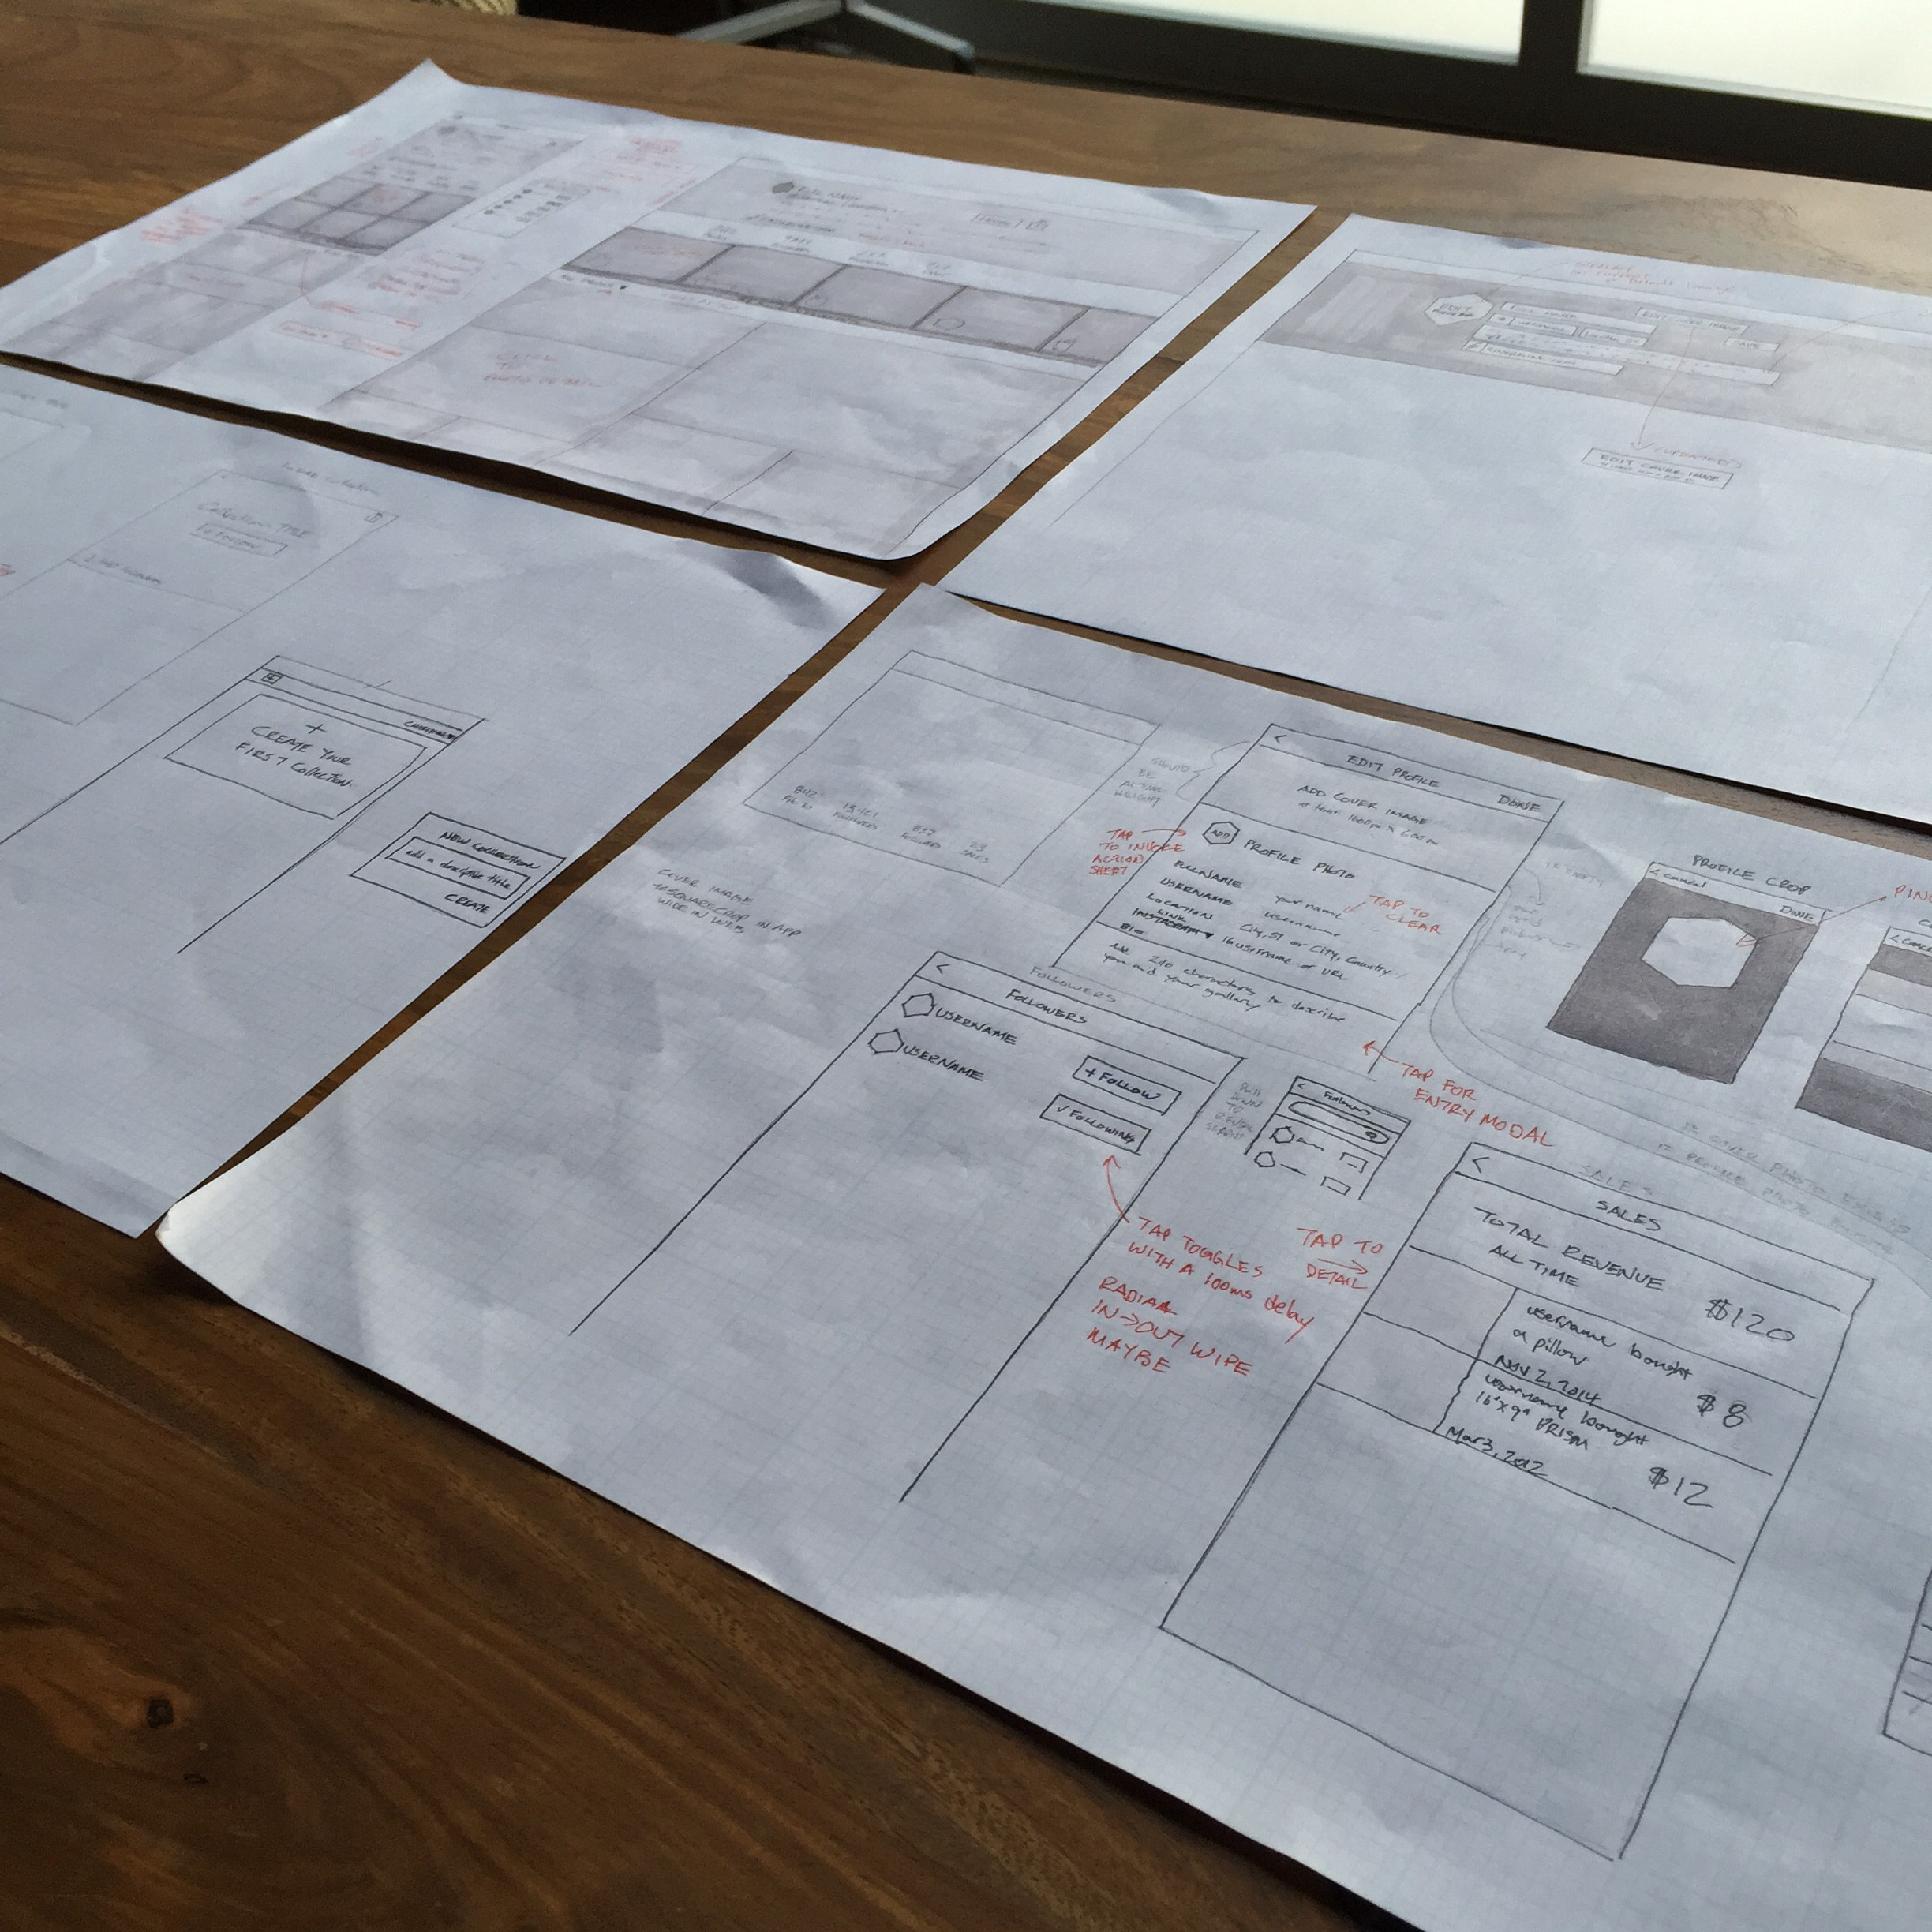 Designing By Hand In The Digital Age User Experiences